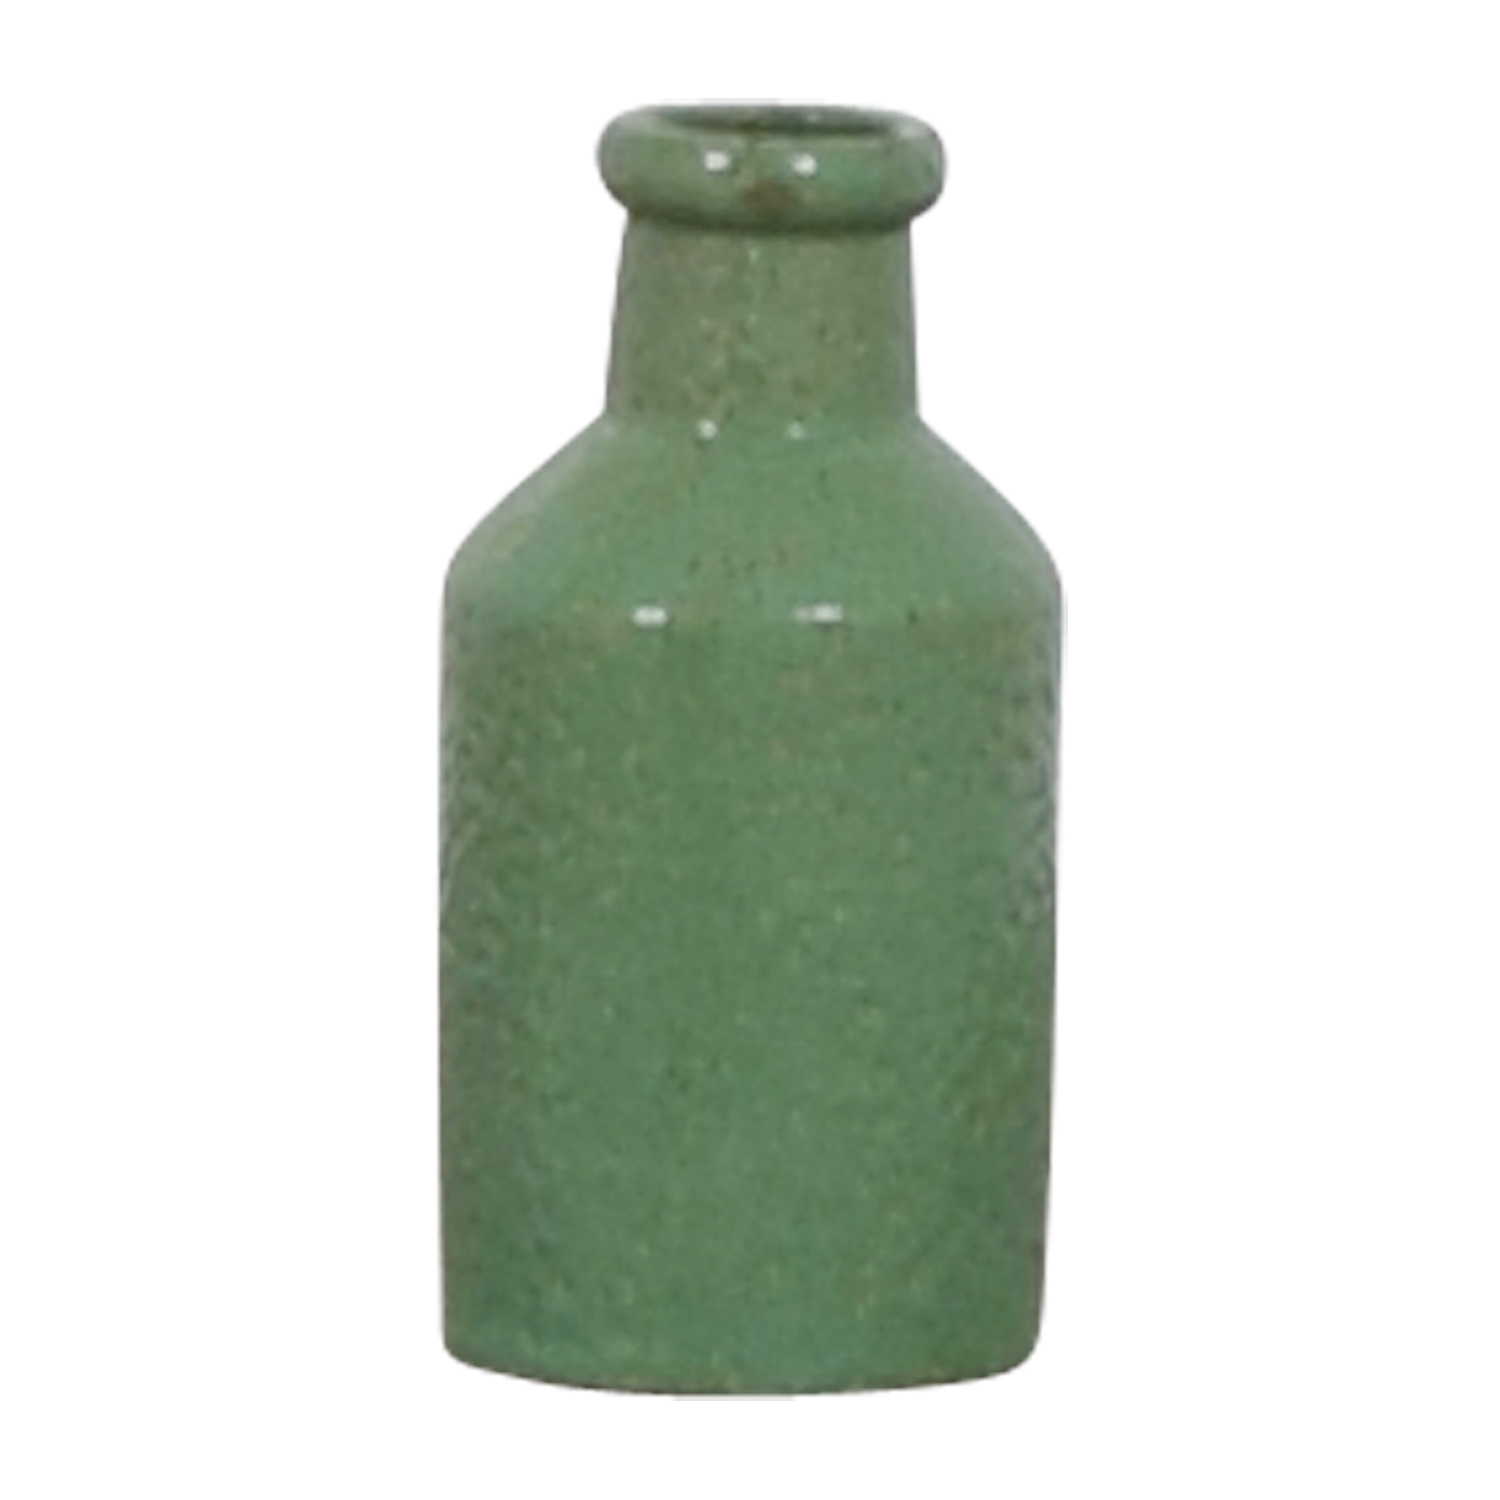 Green Ceramic Bottle dimensions